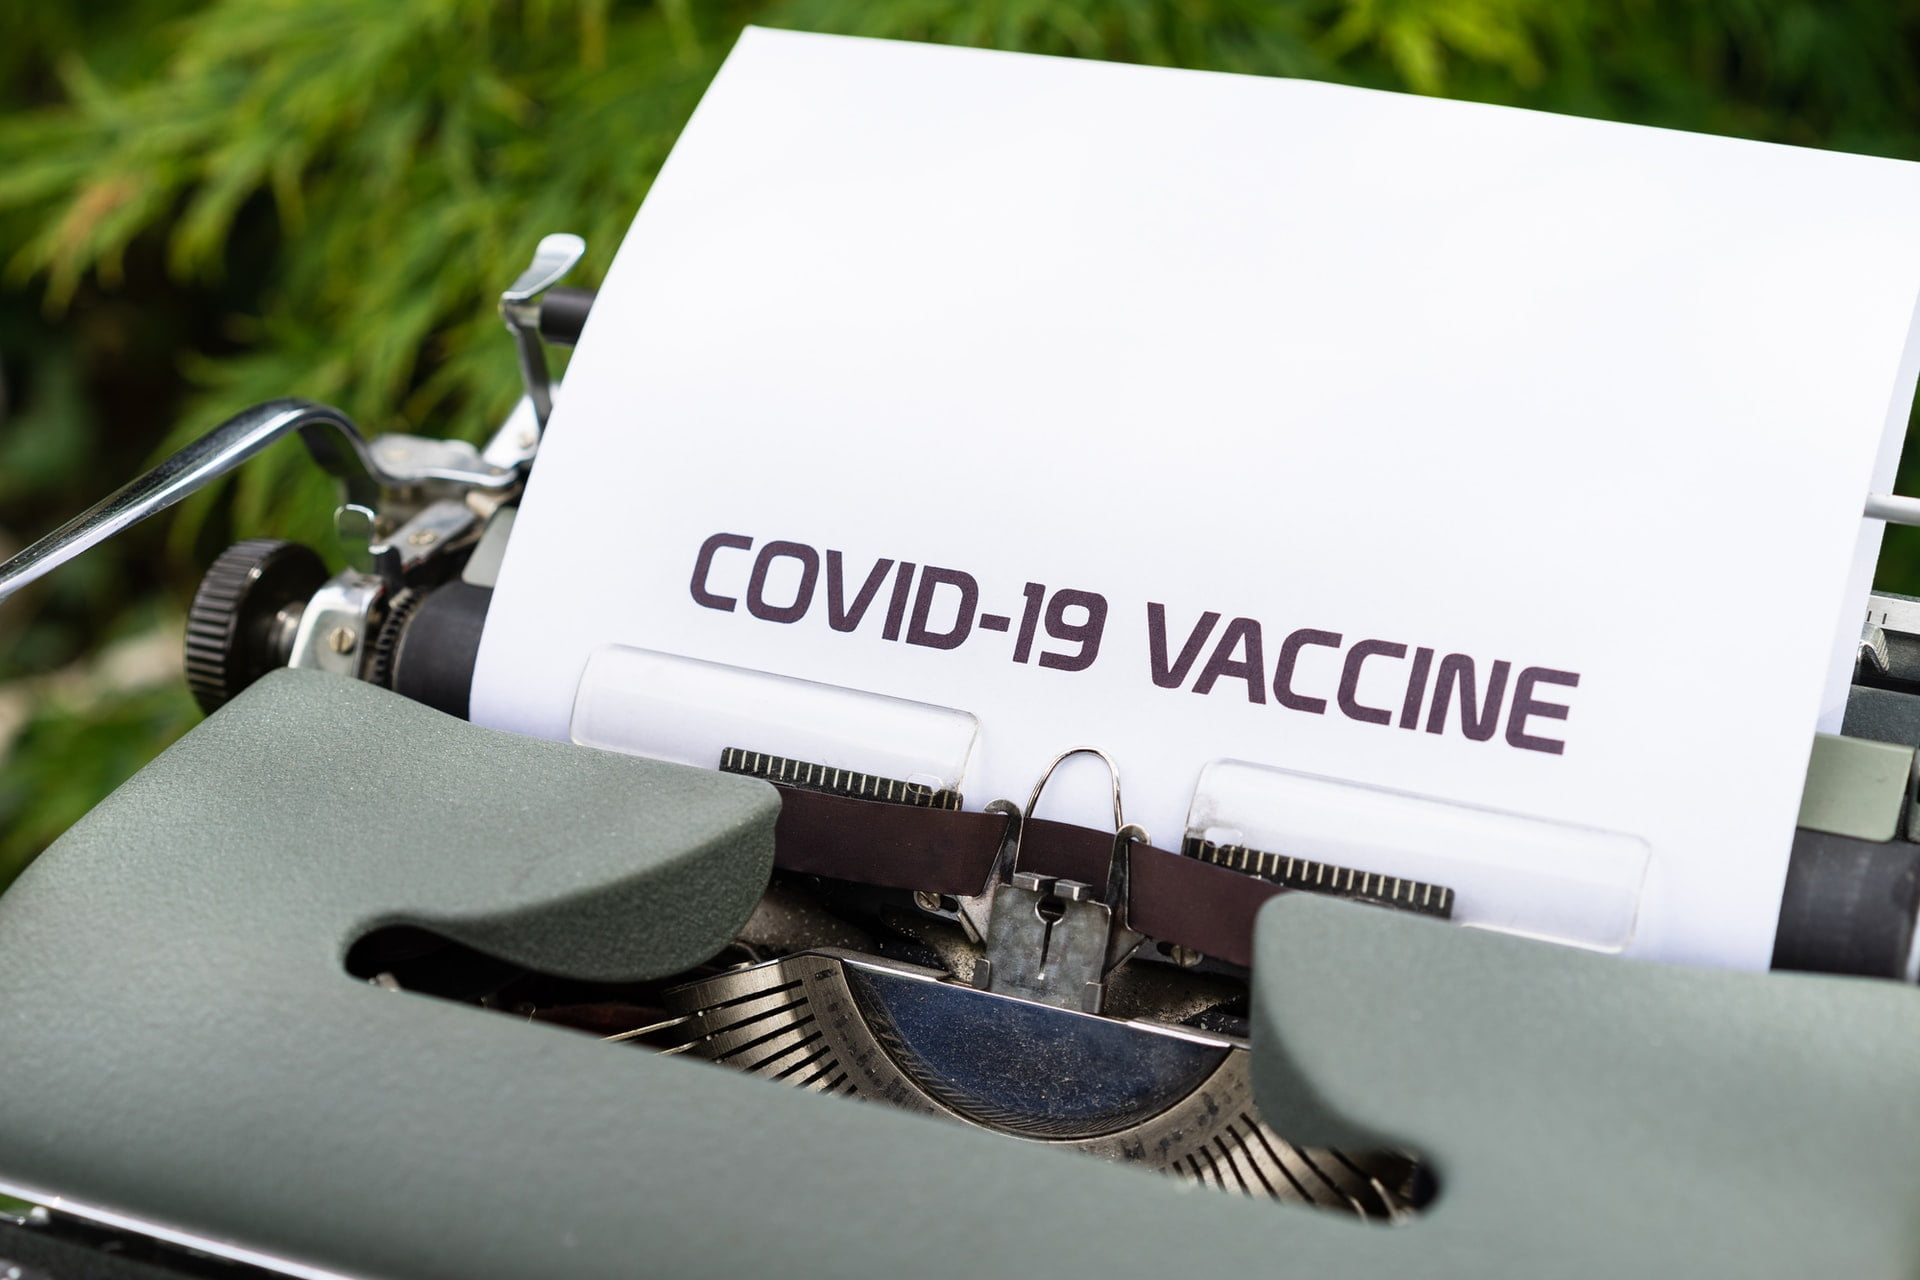 COVID-19 vaccine breakthrough; Moderna COV Vaccine is 94.1% efficient without any safety concerns